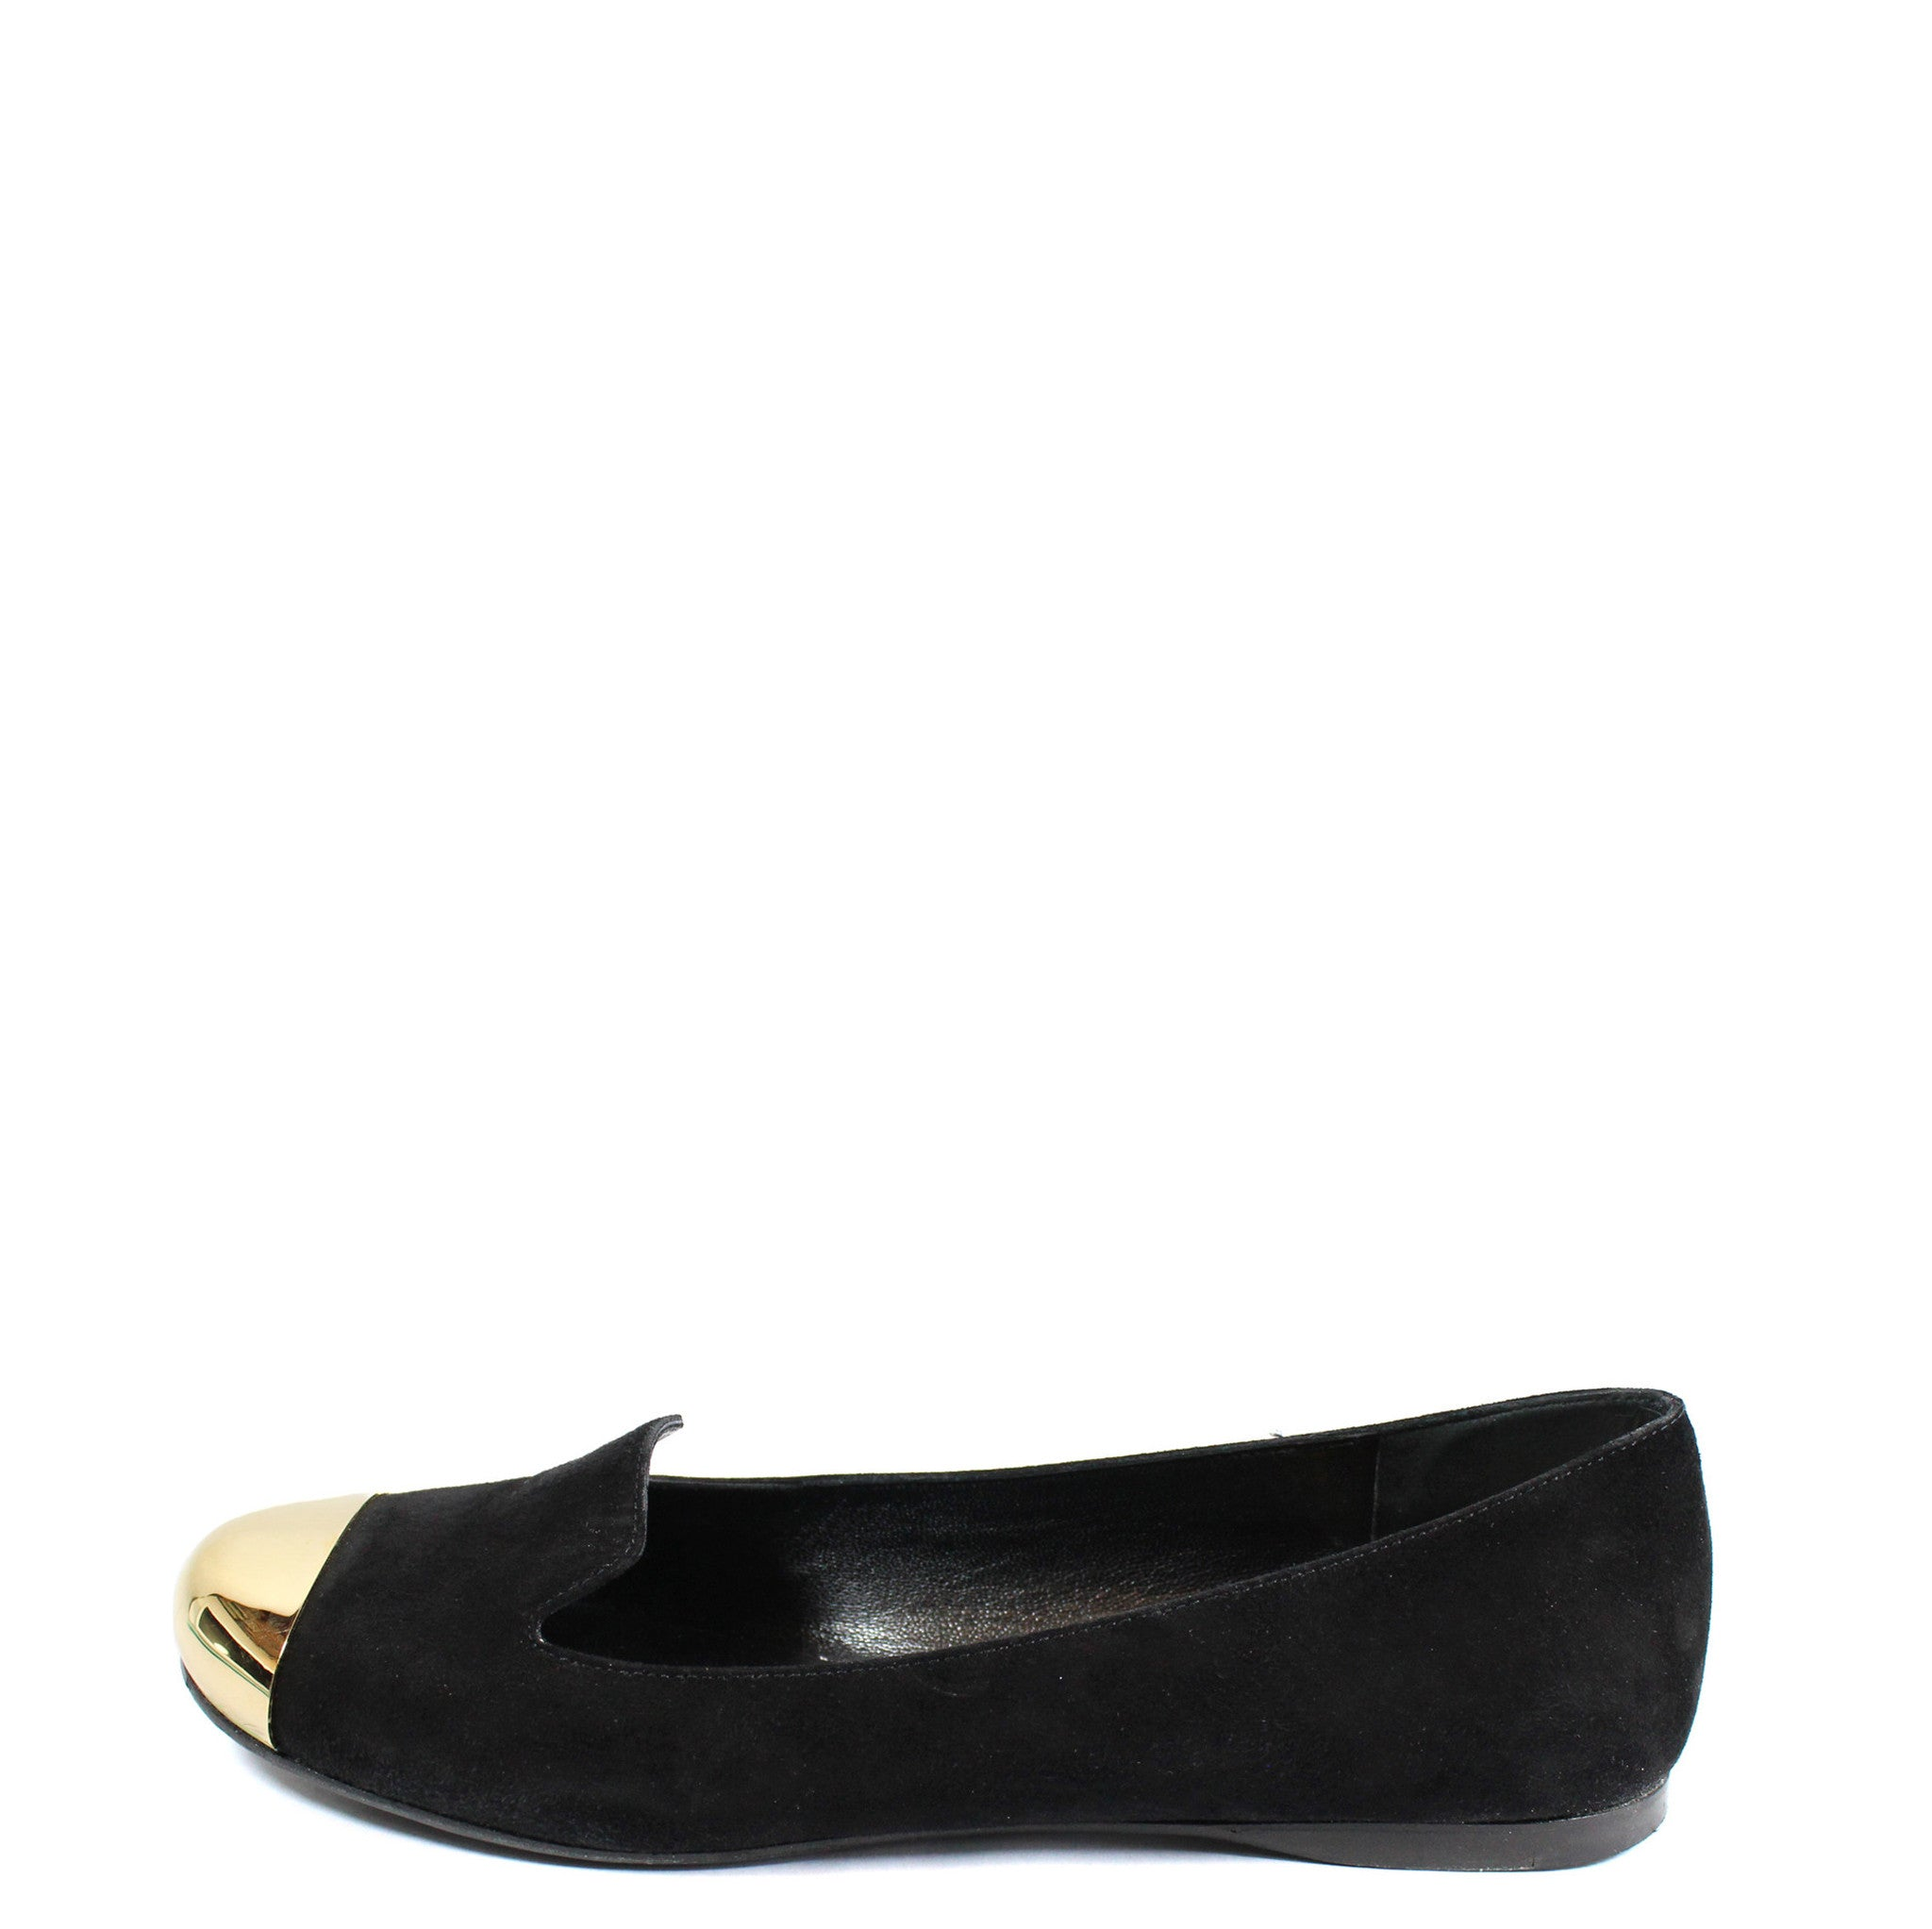 Yves Saint Laurent 'Evalyn' Suede Flats with Gold Cap Toe (Size 36.5) - Encore Consignment - 1